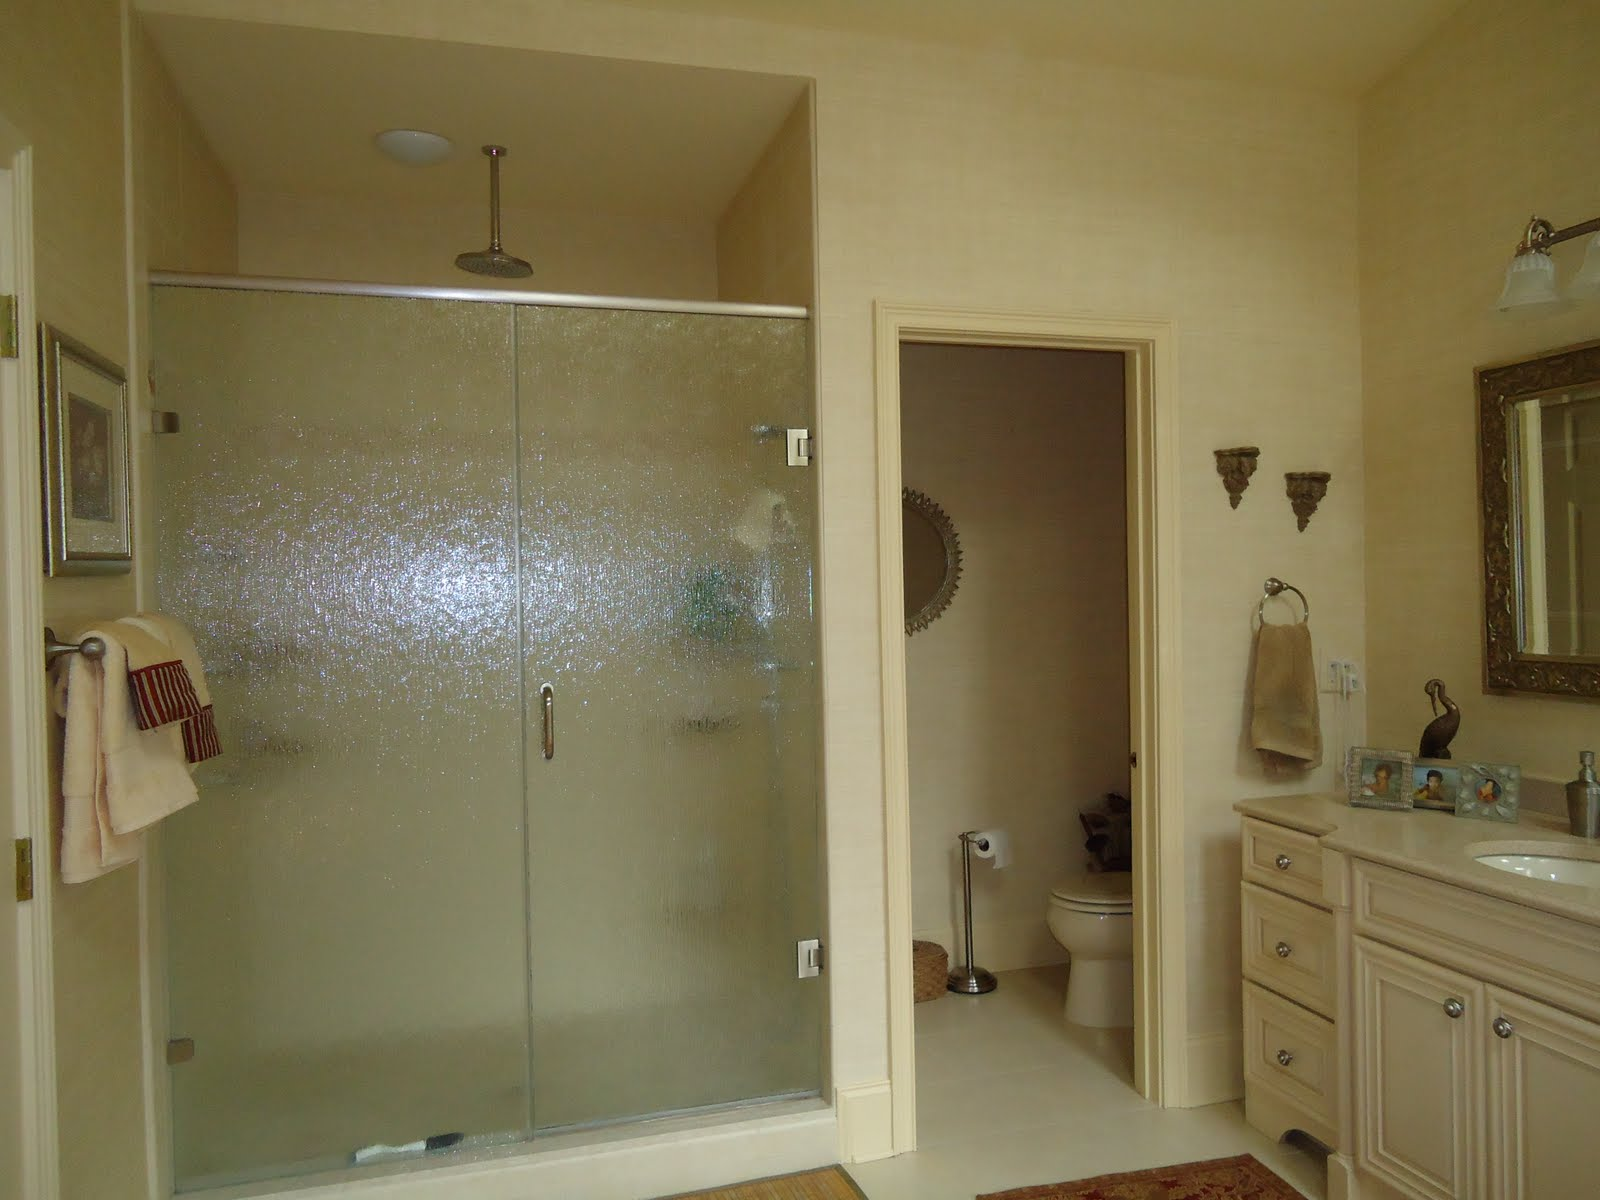 Thomas J Mack Construction Serving Bucks County Since Services - Bathroom remodel without permit